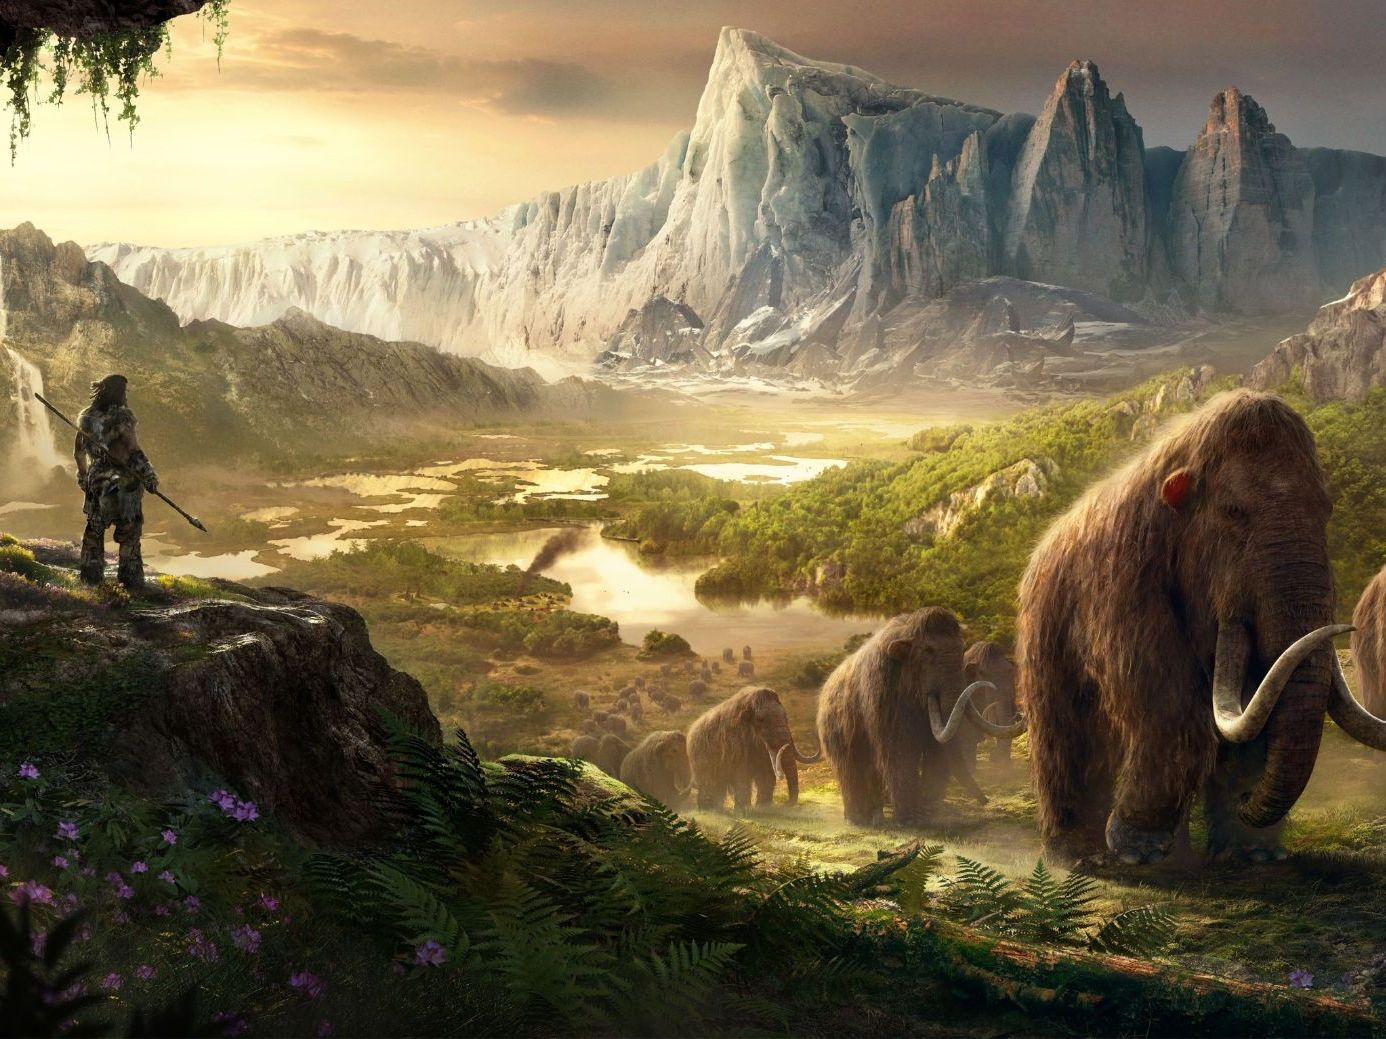 TERM OF ENGLISH AND GEOGRAPHY  PLANNING FOR KS2 - Y3 OR Y4 - STONE AGE/ STIG OF THE DUMP/ HOW TO WASH A WOOLLY MAMMOTH- PRE HISTORY TOPIC